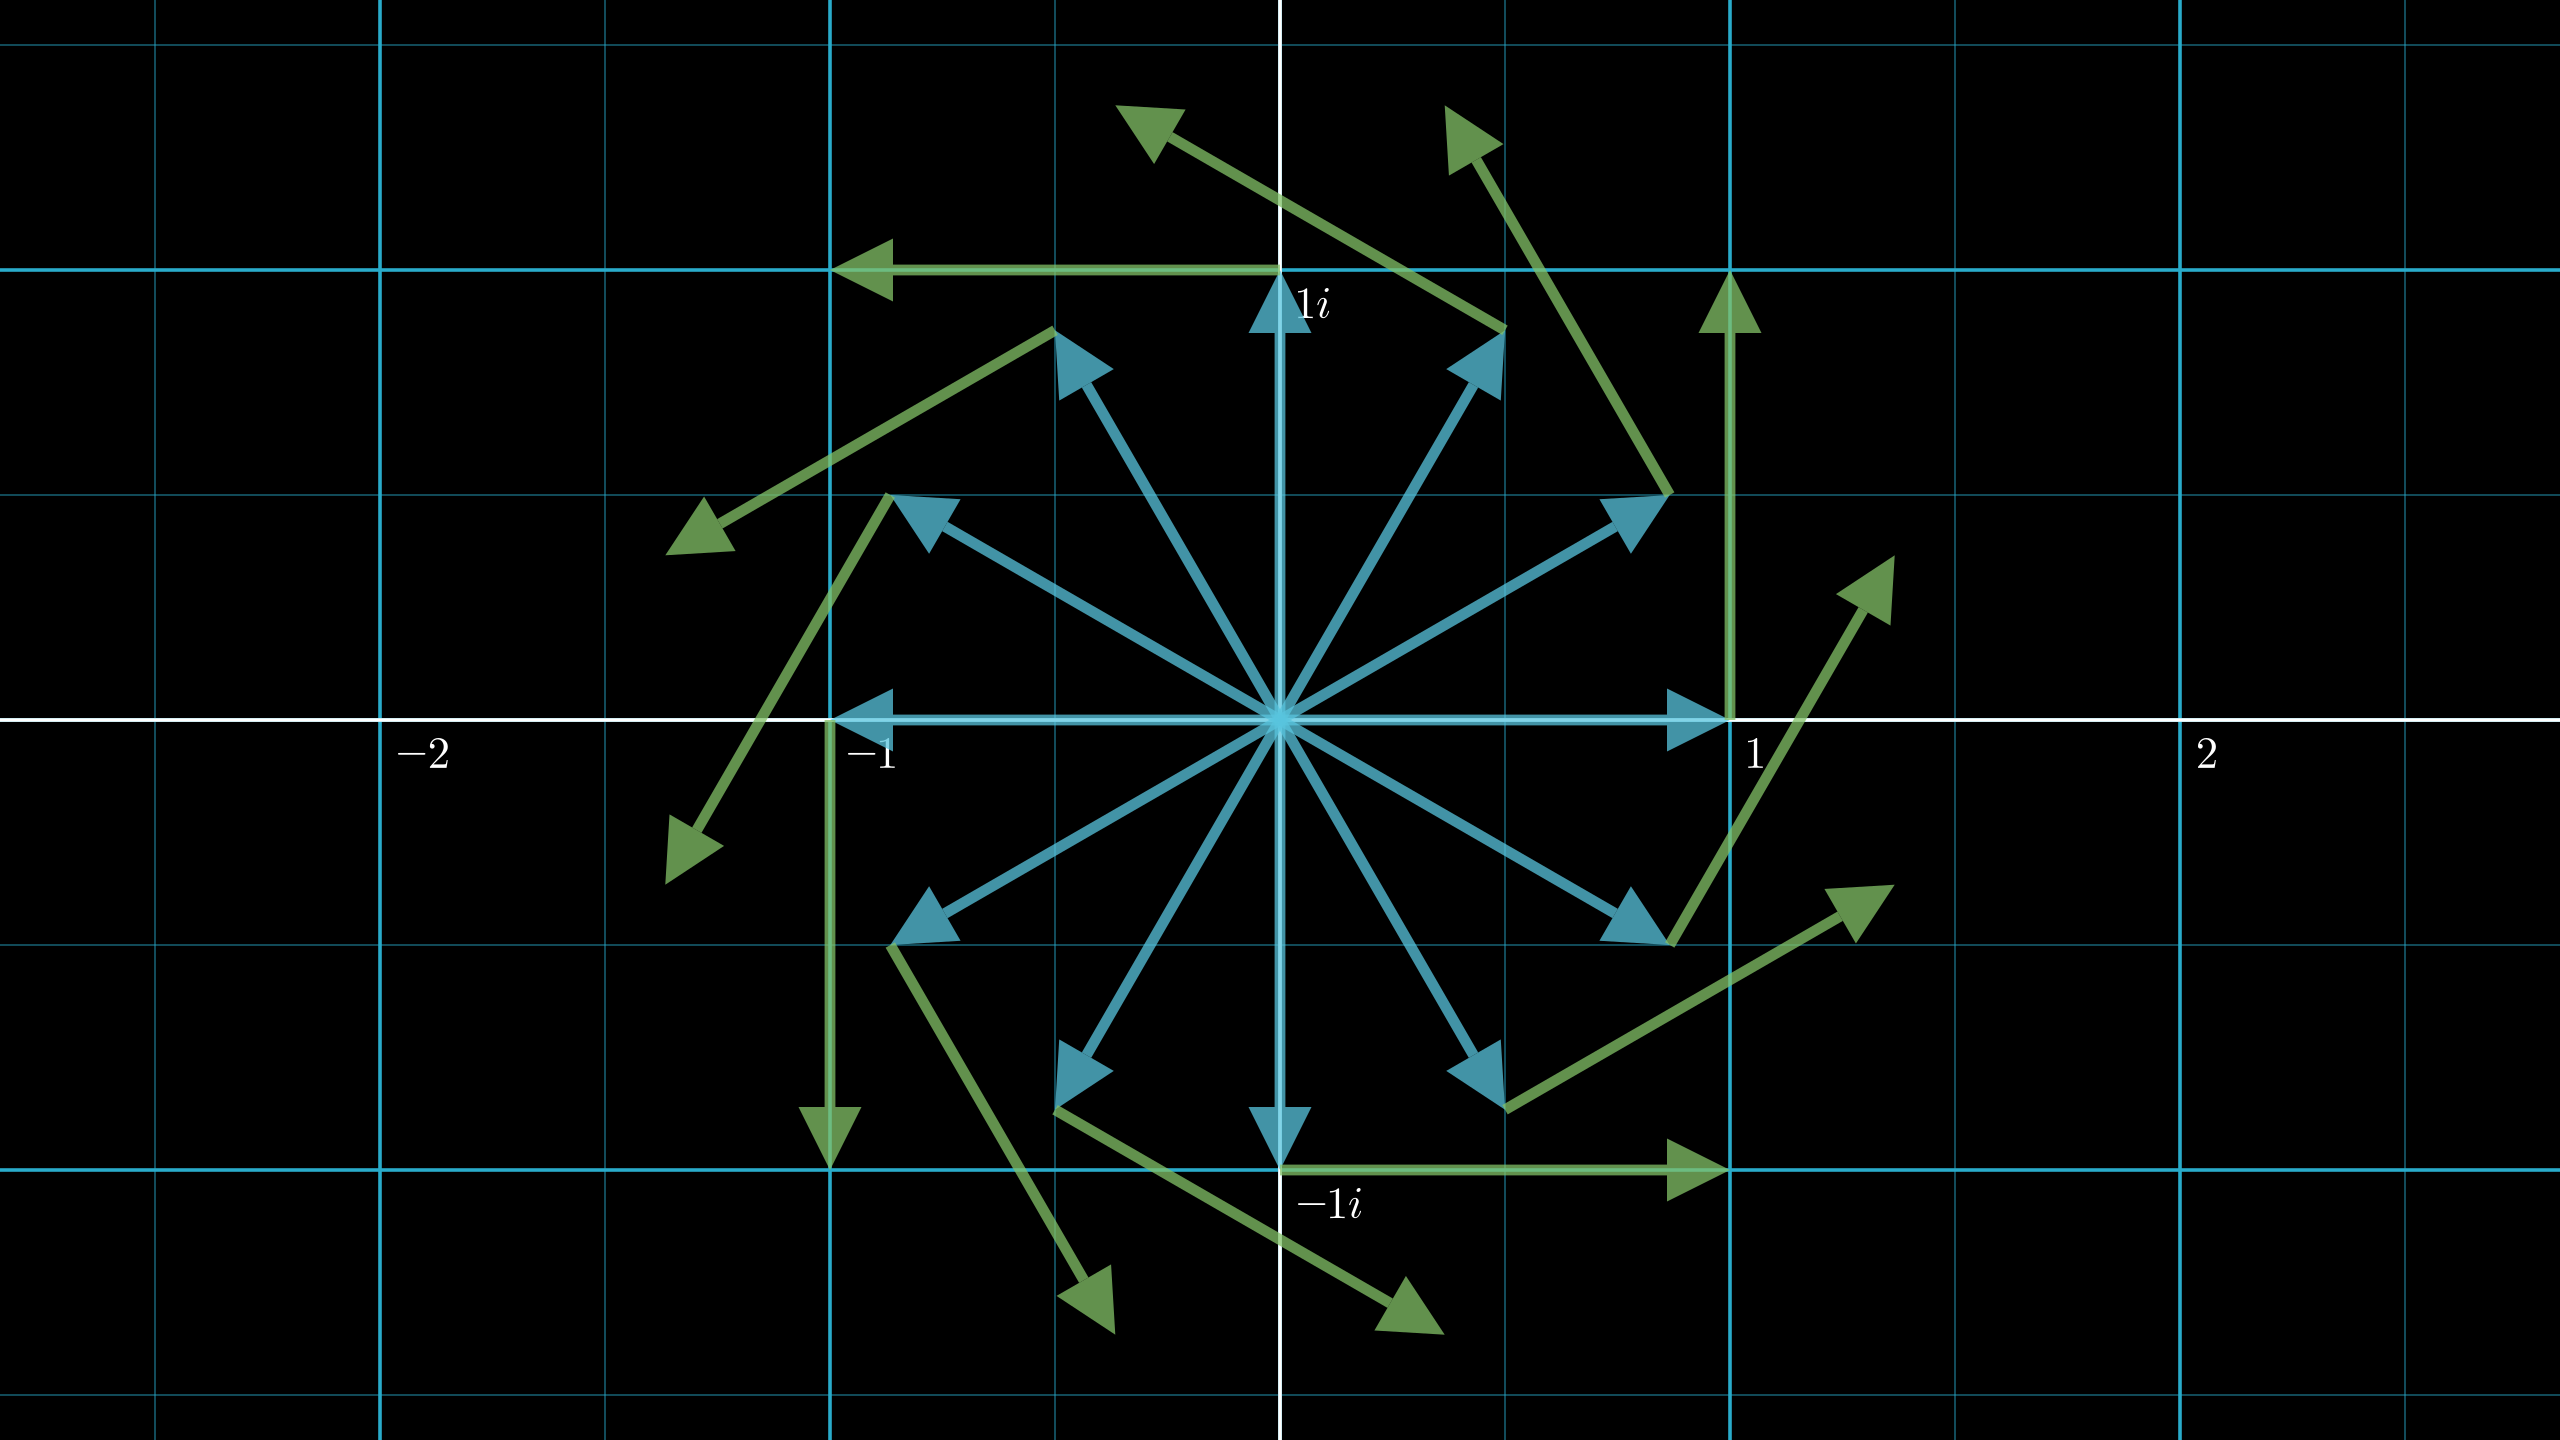 Each blue arrow above pointing outward from the origin represents an example value of $e^{it}$, thought of as a position vector. The corresponding green arrow at its tip shows what the velocity, equal to the position rotated 90 degrees counterclockwise, would have to be for that particular position.